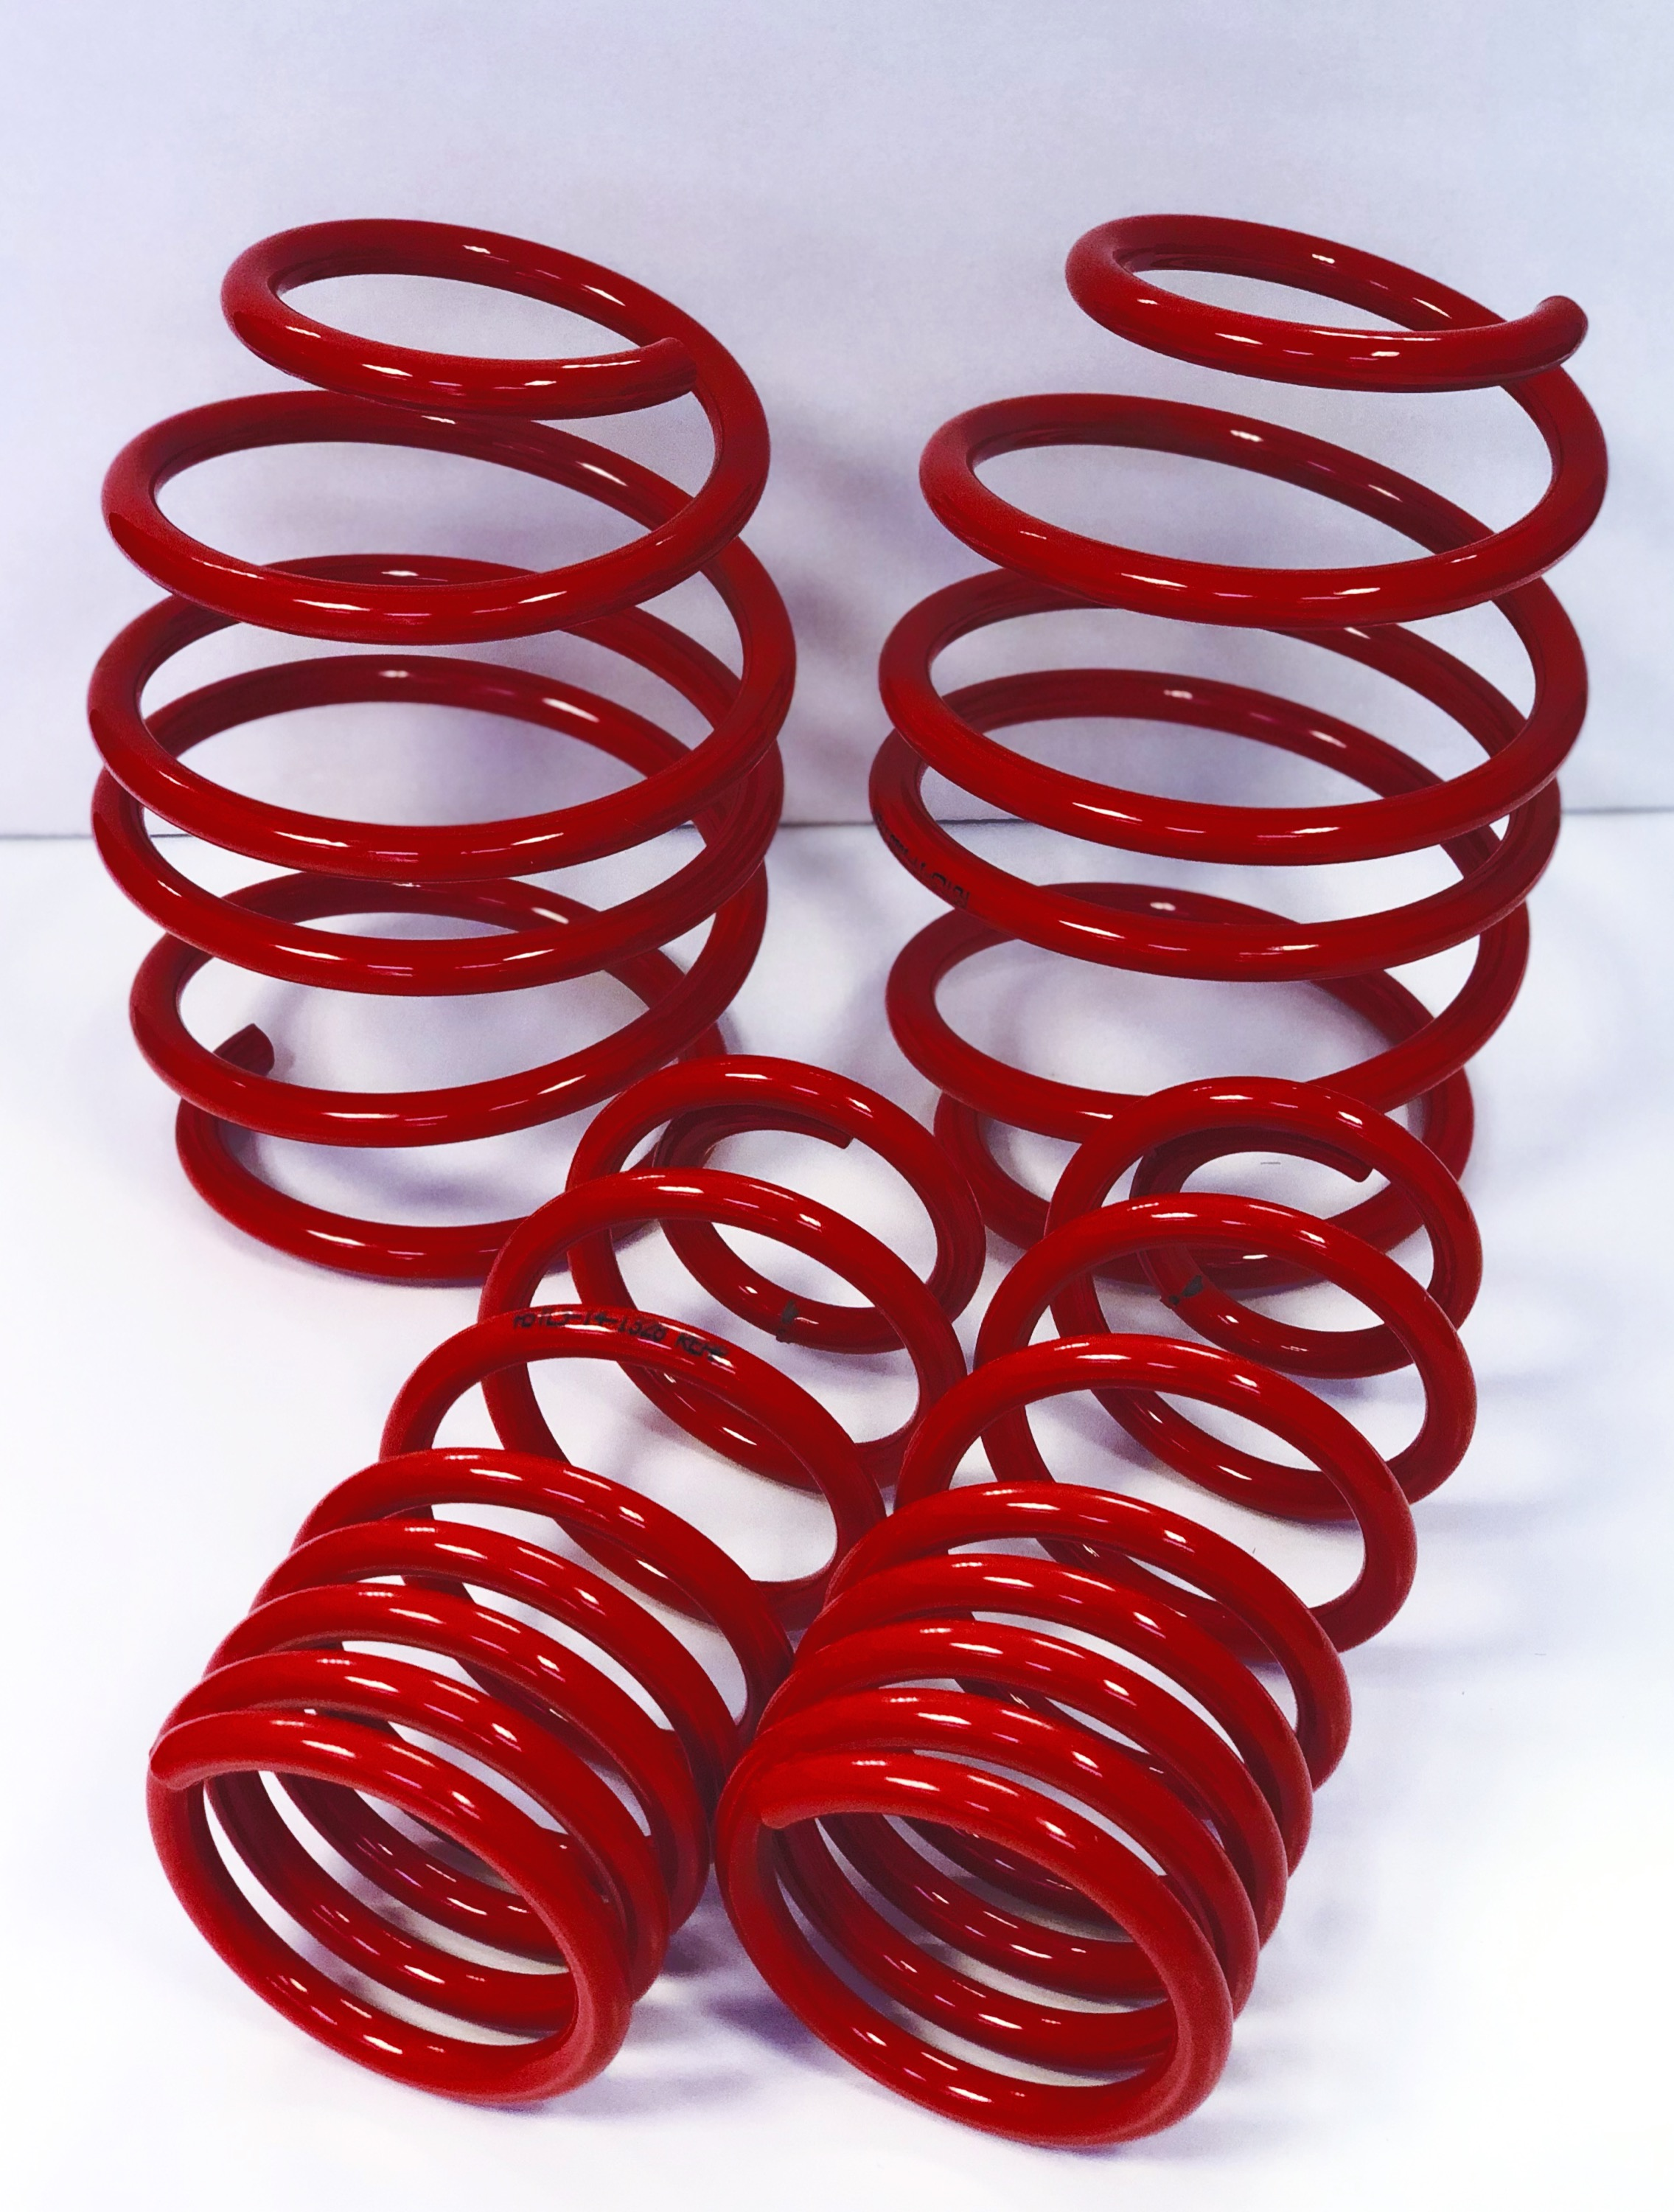 Vauxhall CORSA AST Suspension Lowering Springs 40MM